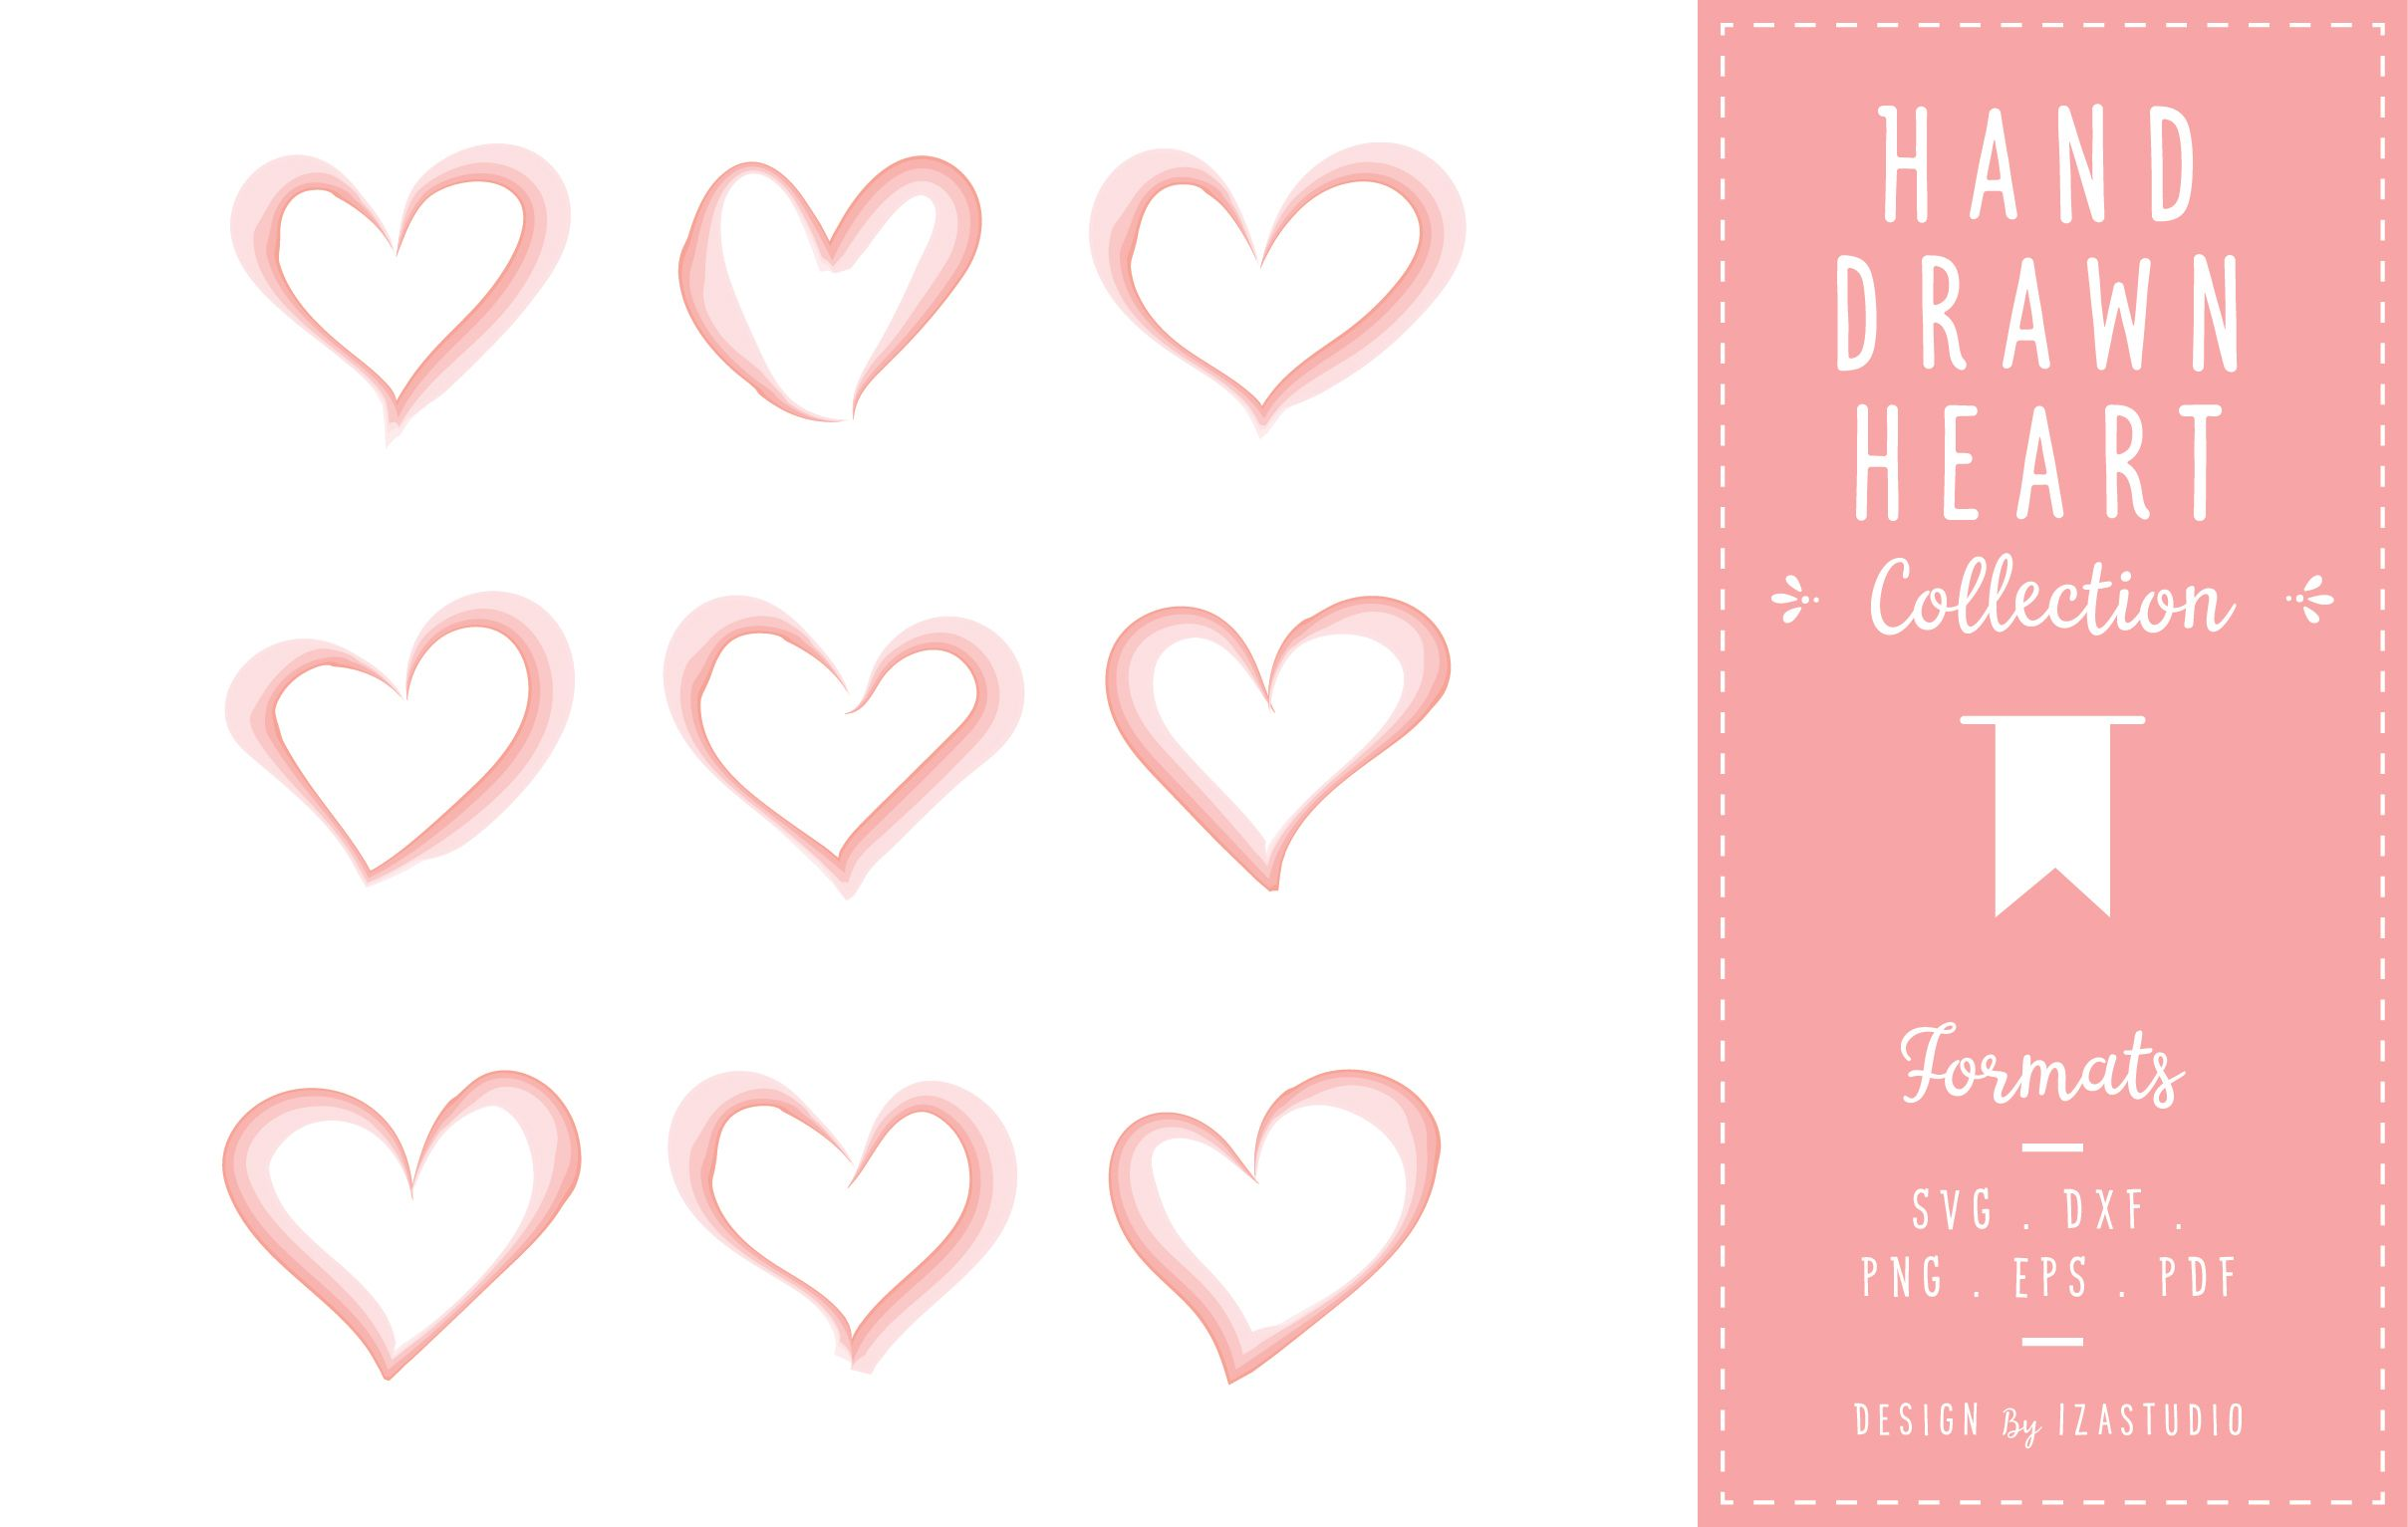 Hand Drawn Heart Collection How to draw hands, Heart